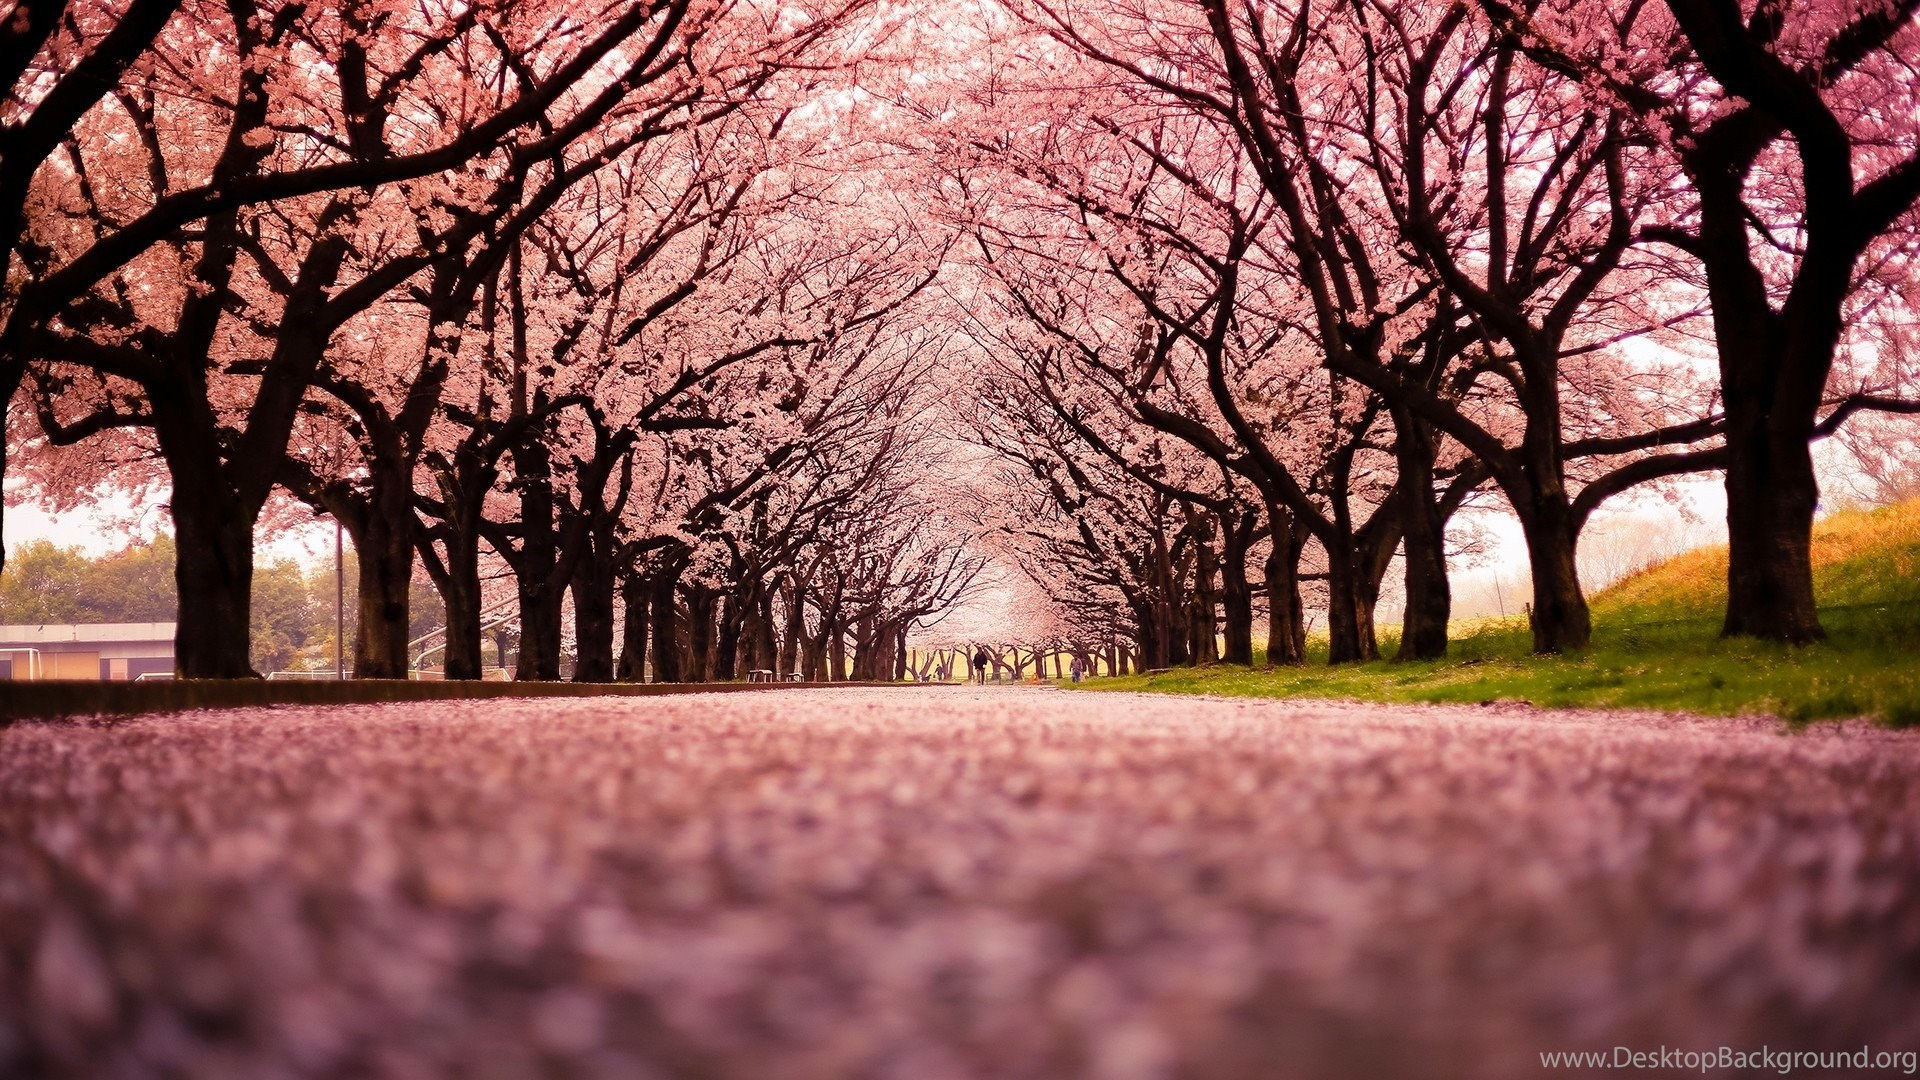 Landscape, Cherry Blossom, Trees, Path, Nature Wallpapers